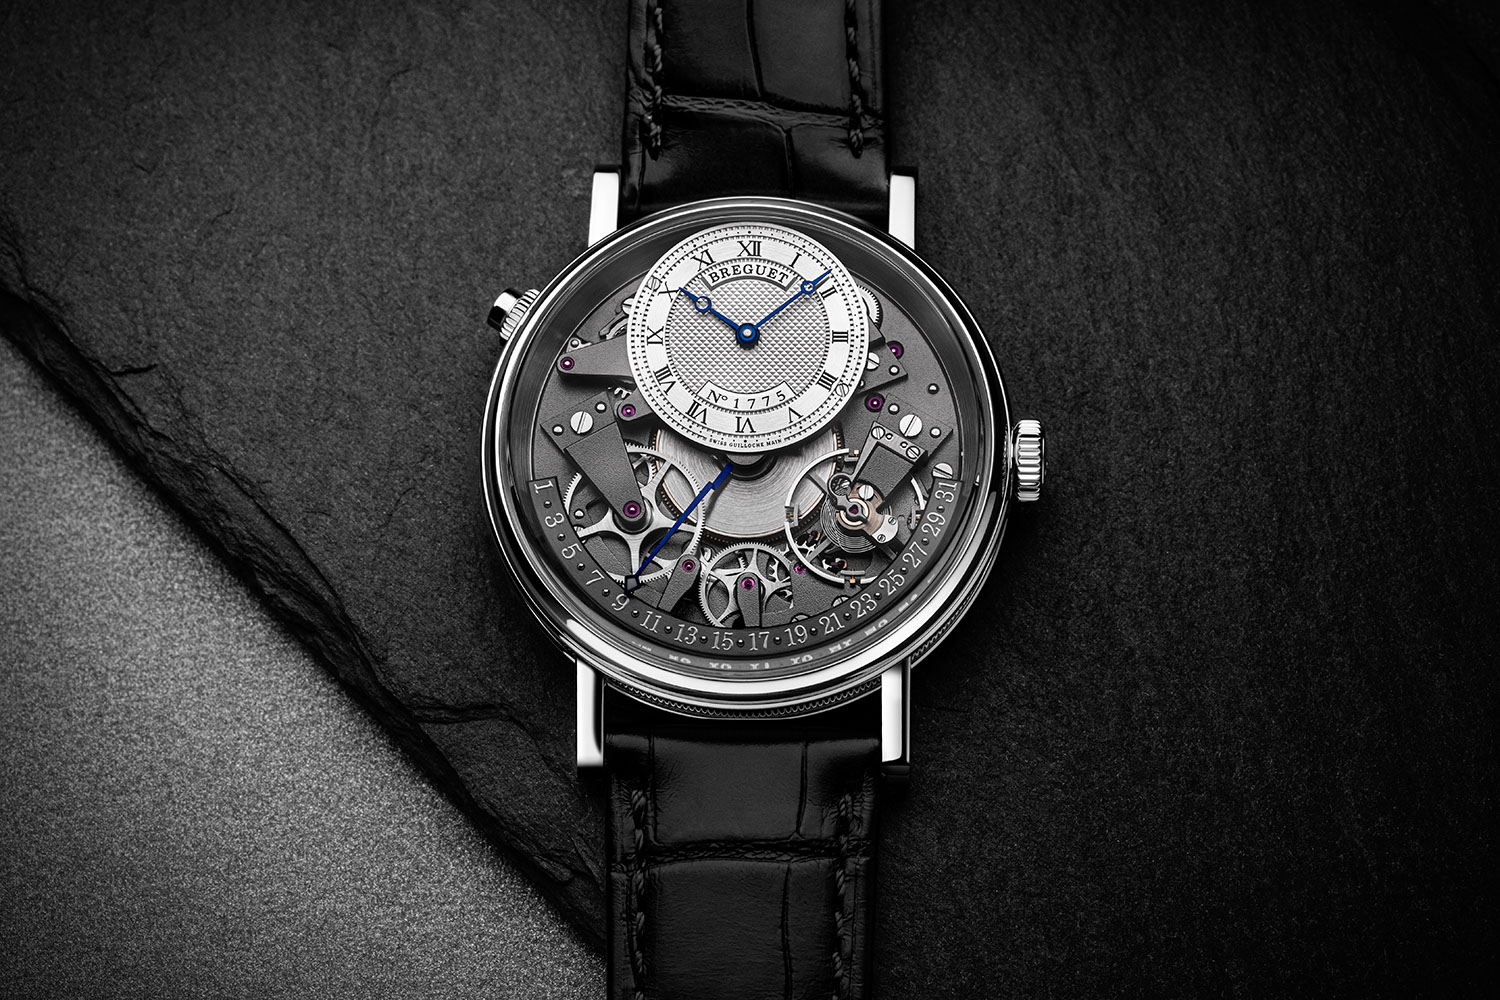 Breguet Tradition Quantième Retrograde 7597 in white gold